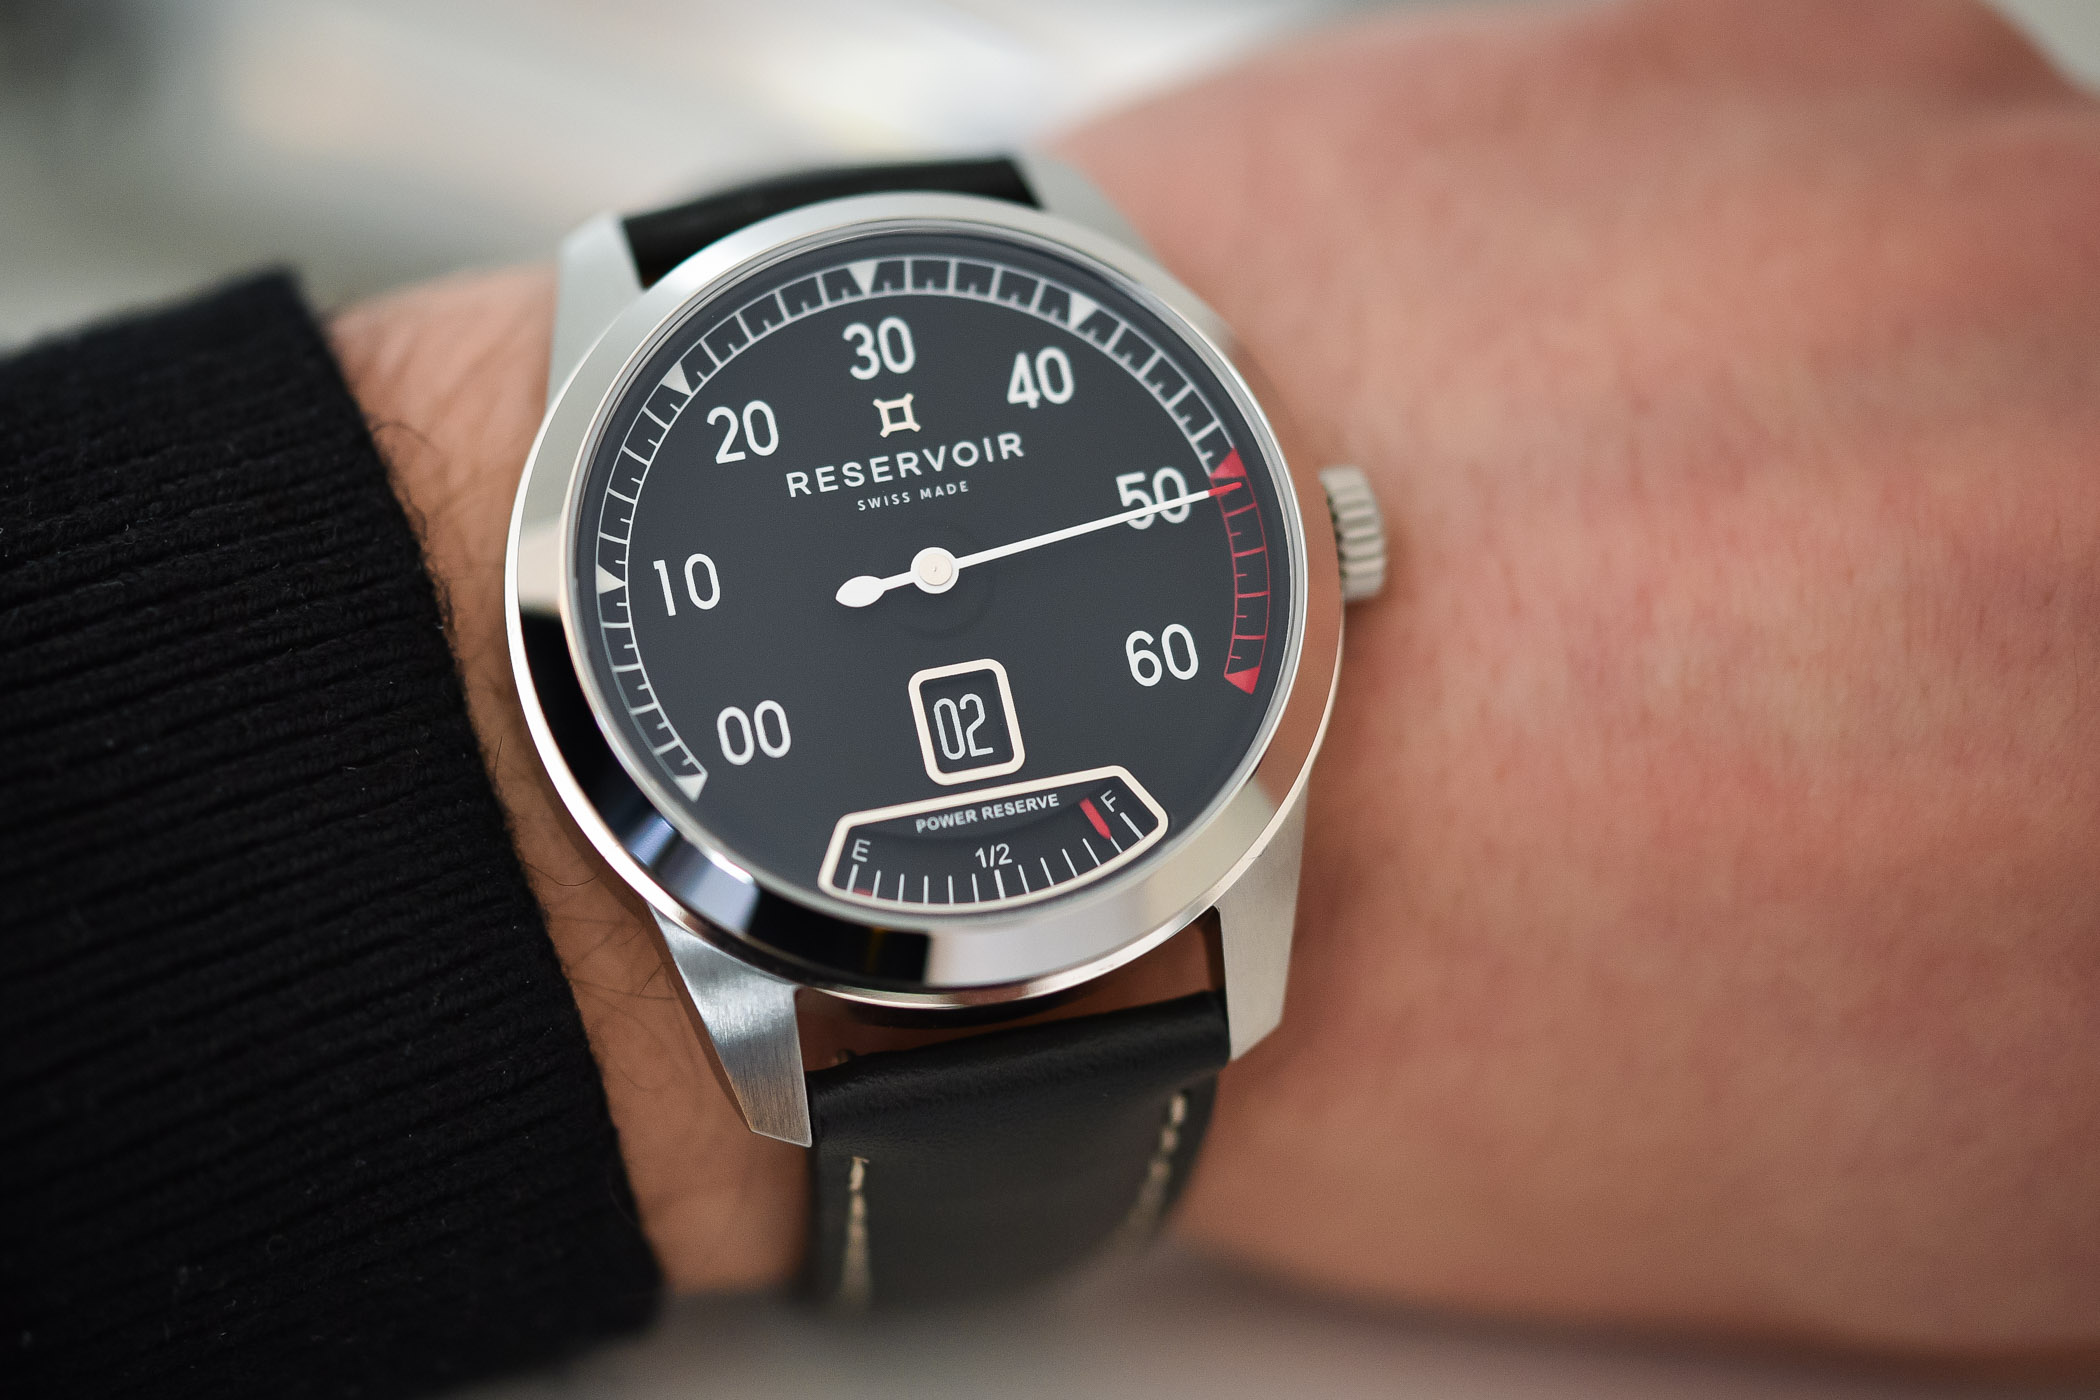 Reservoir Supercharged Sport Watch Review